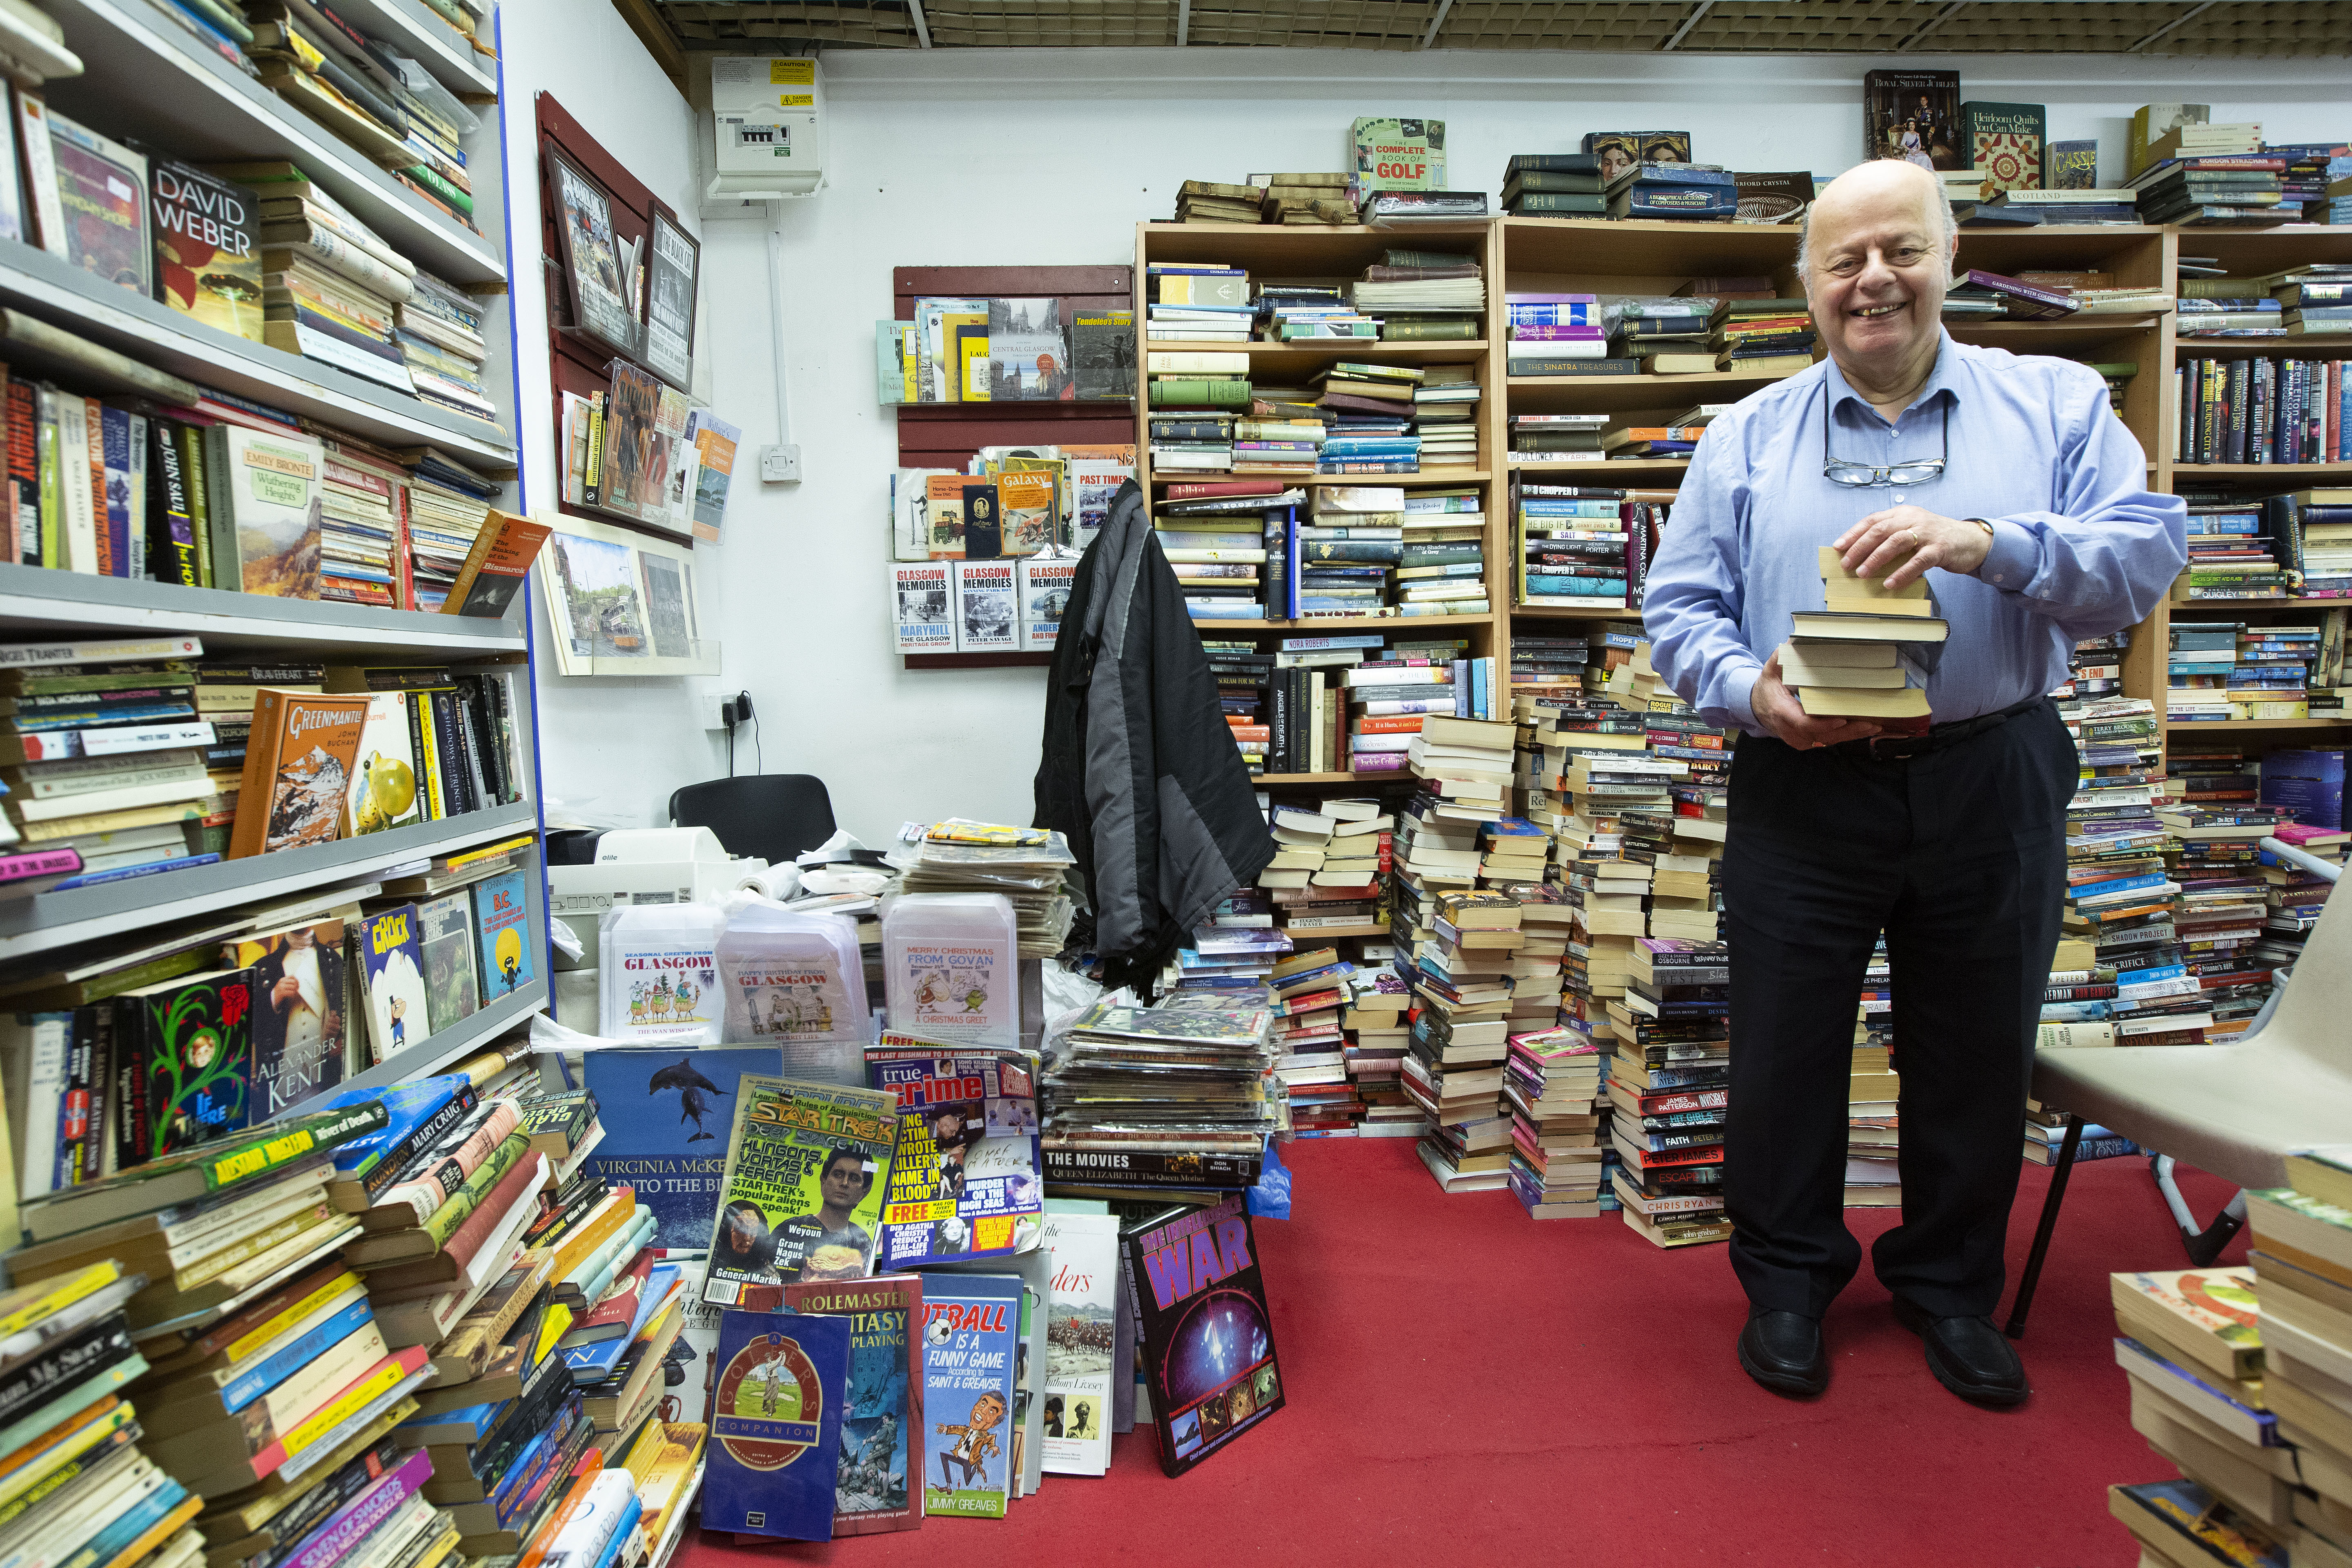 Paul Abrahams in his Book Tree bookshop in COLAB in the Savoy Centre